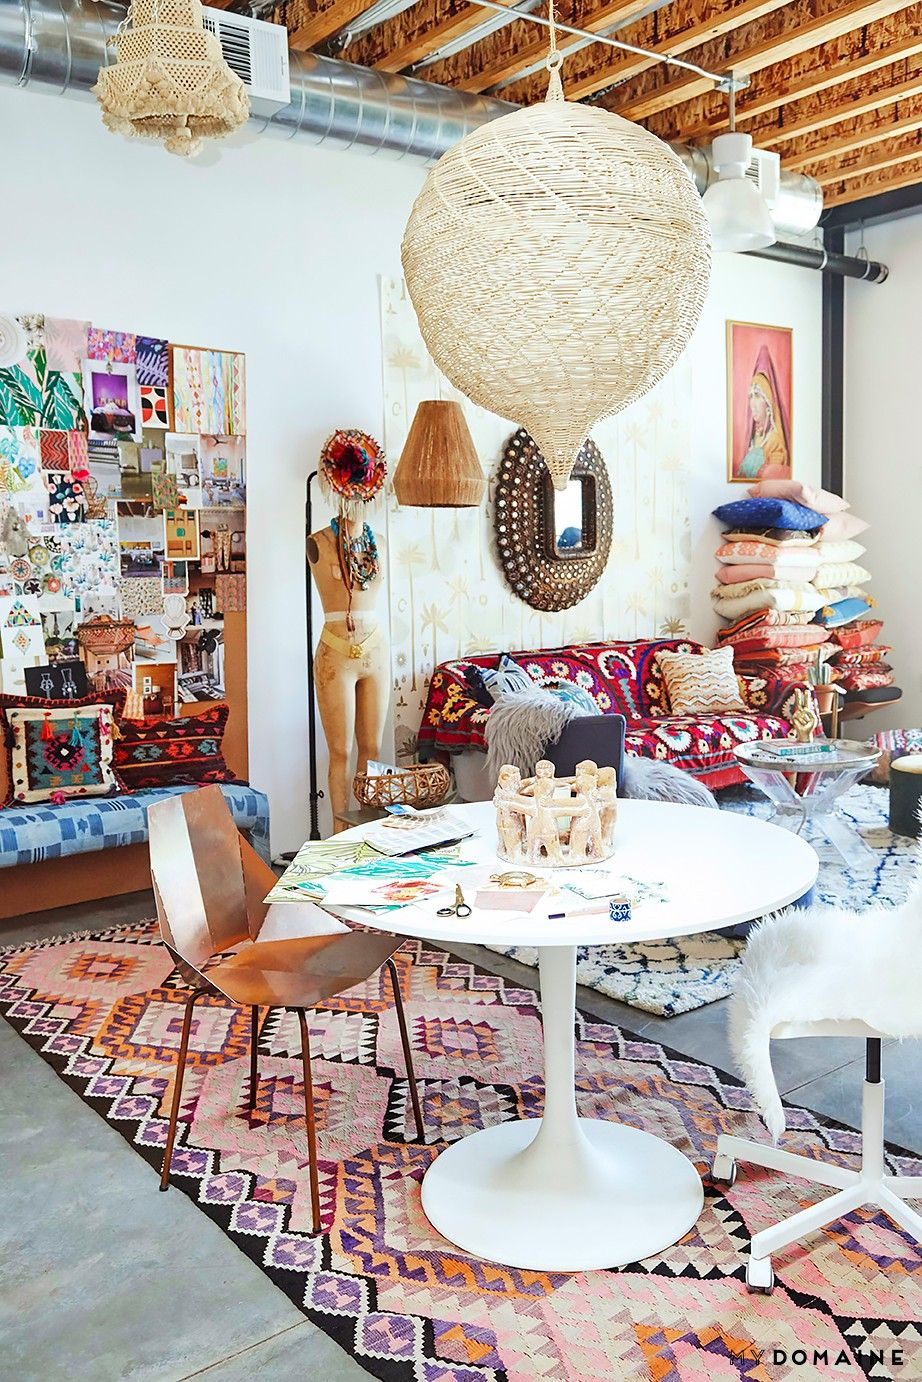 Exclusive: The Jungalowu0027s L.A. Office Is A Boho Feast For The Eyes Via  @MyDomaine